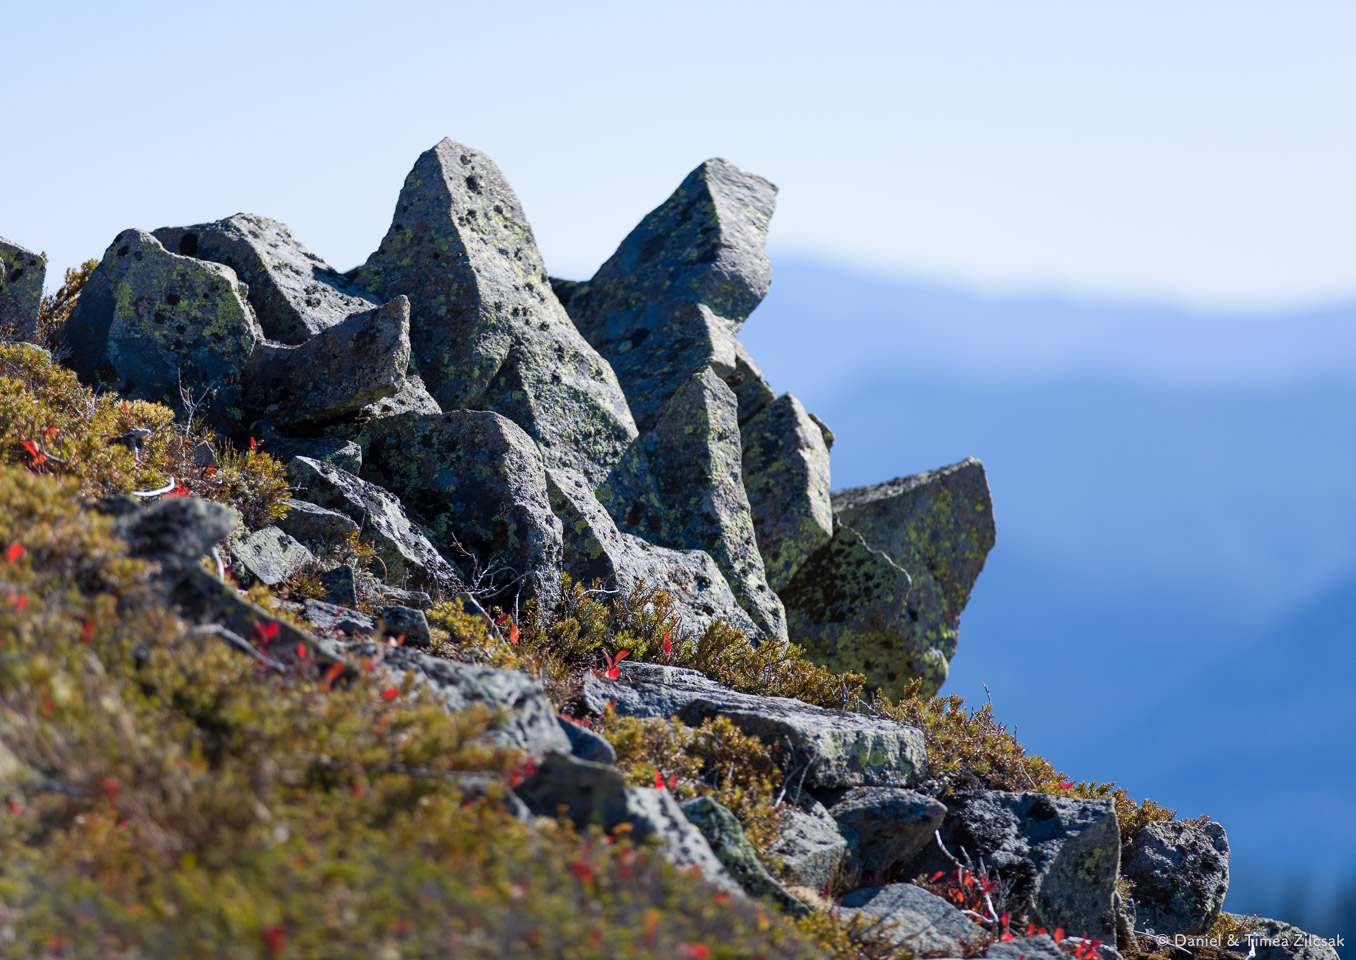 On the rocky summit of Silver Peak, Snoqualmie Pass